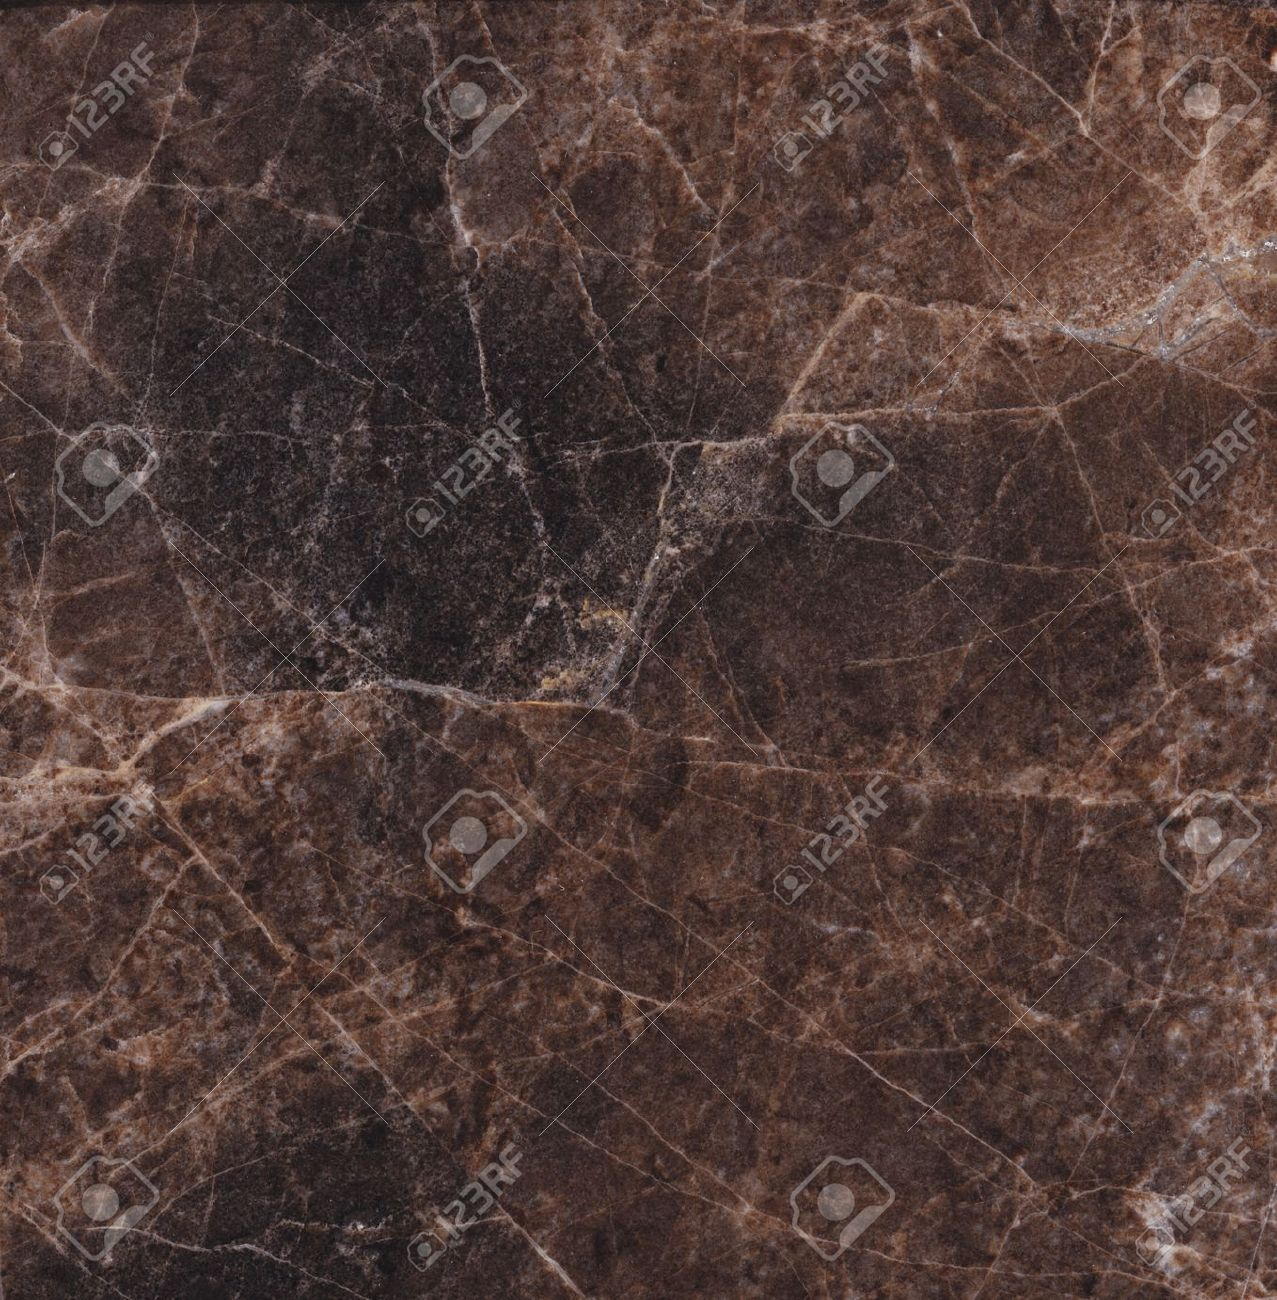 Dark Brown Marble Texture High Resolution Stock Photo Picture And Royalty Free Image Image 9057132